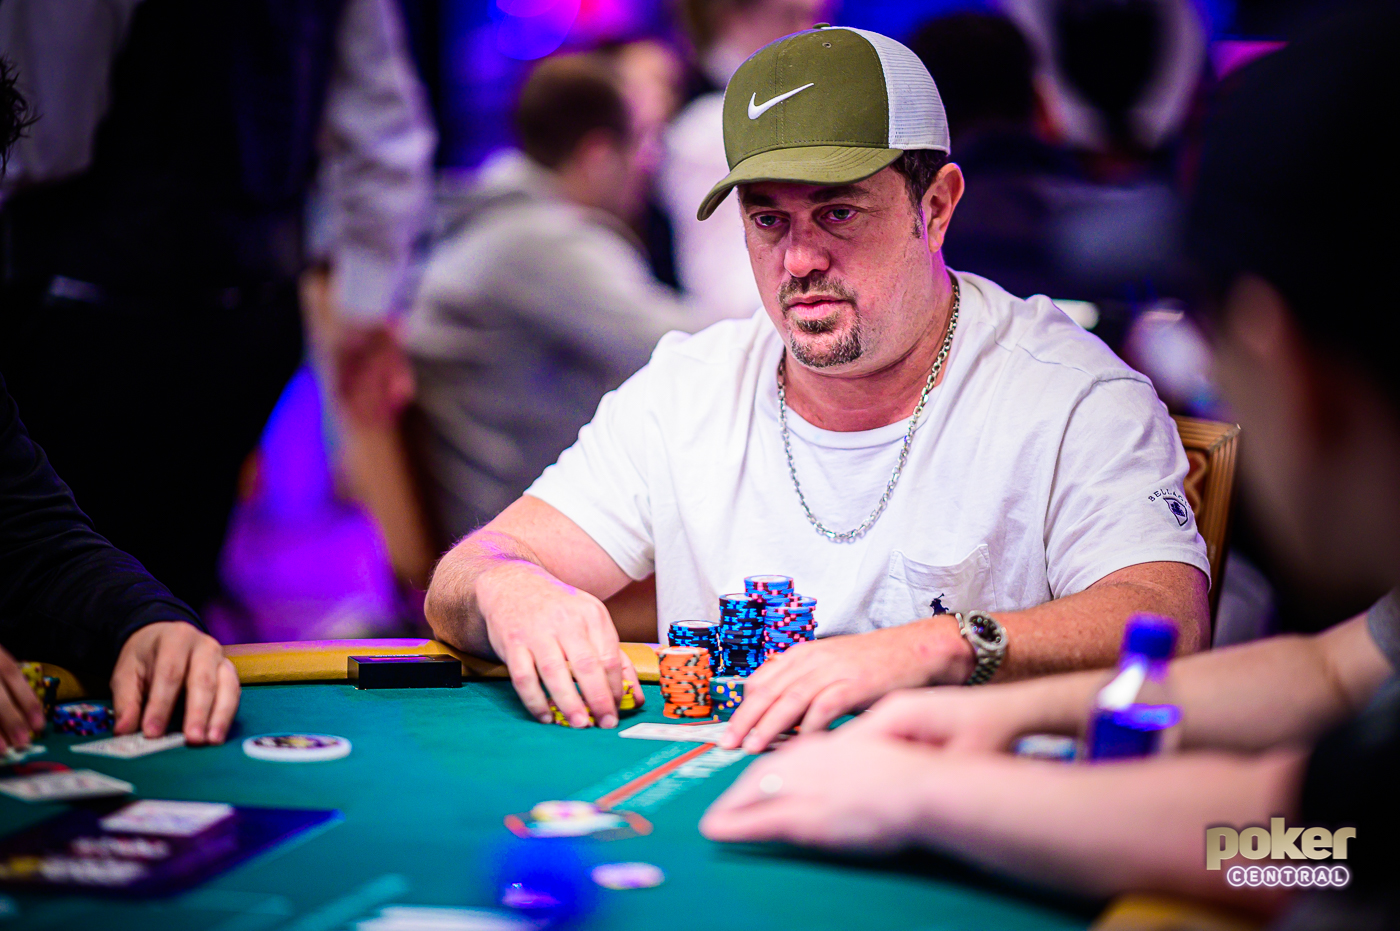 David Oppenheim has played high stakes cash games for well over two decades and continues to crush.